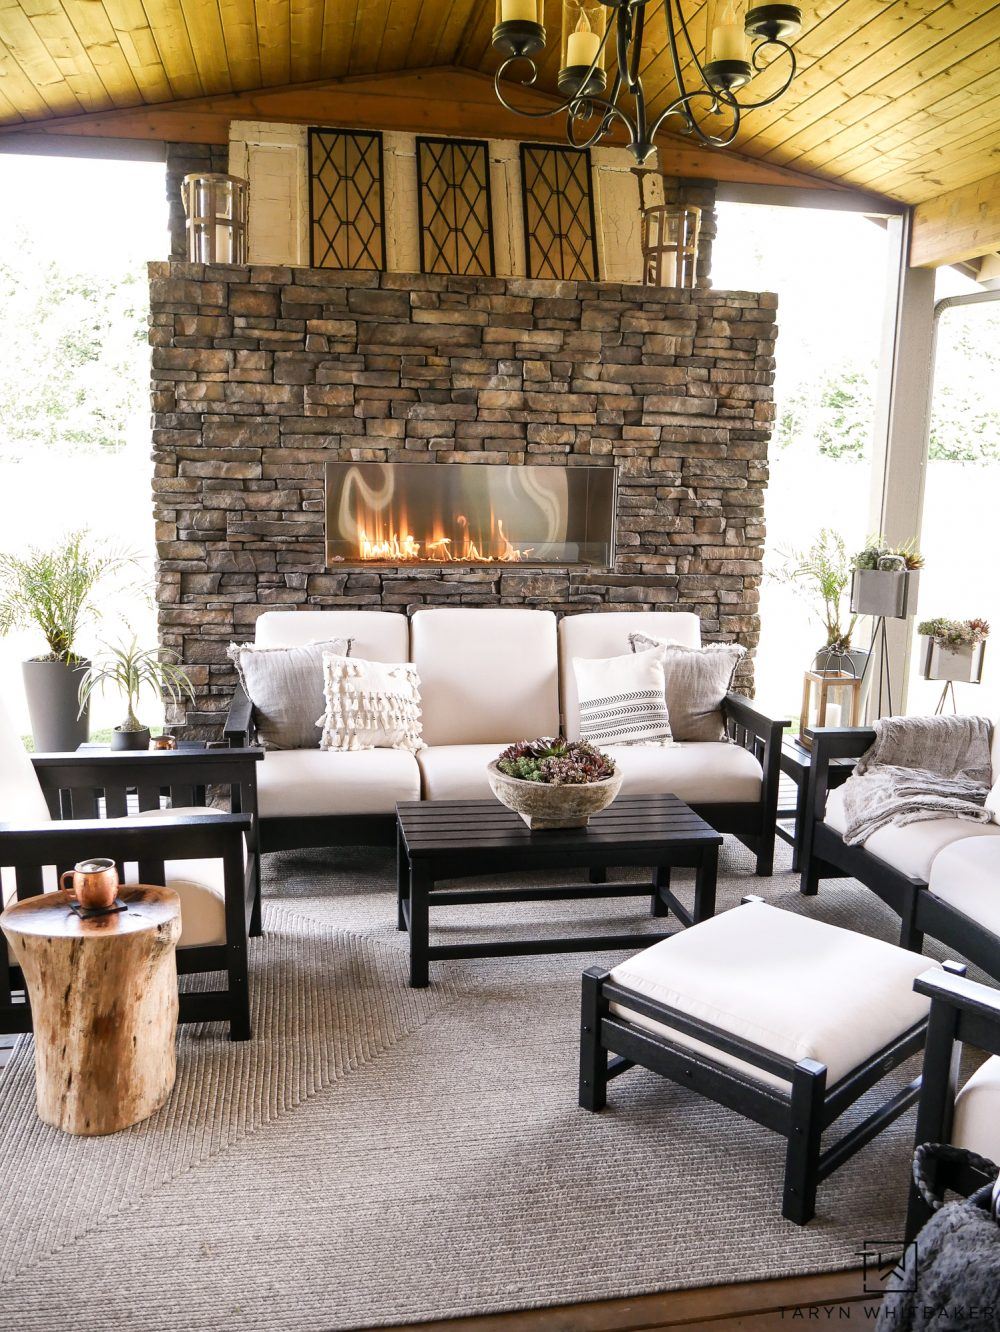 White Outdoor Patio Furniture.New Black And White Outdoor Patio Furniture With Stone Fireplace